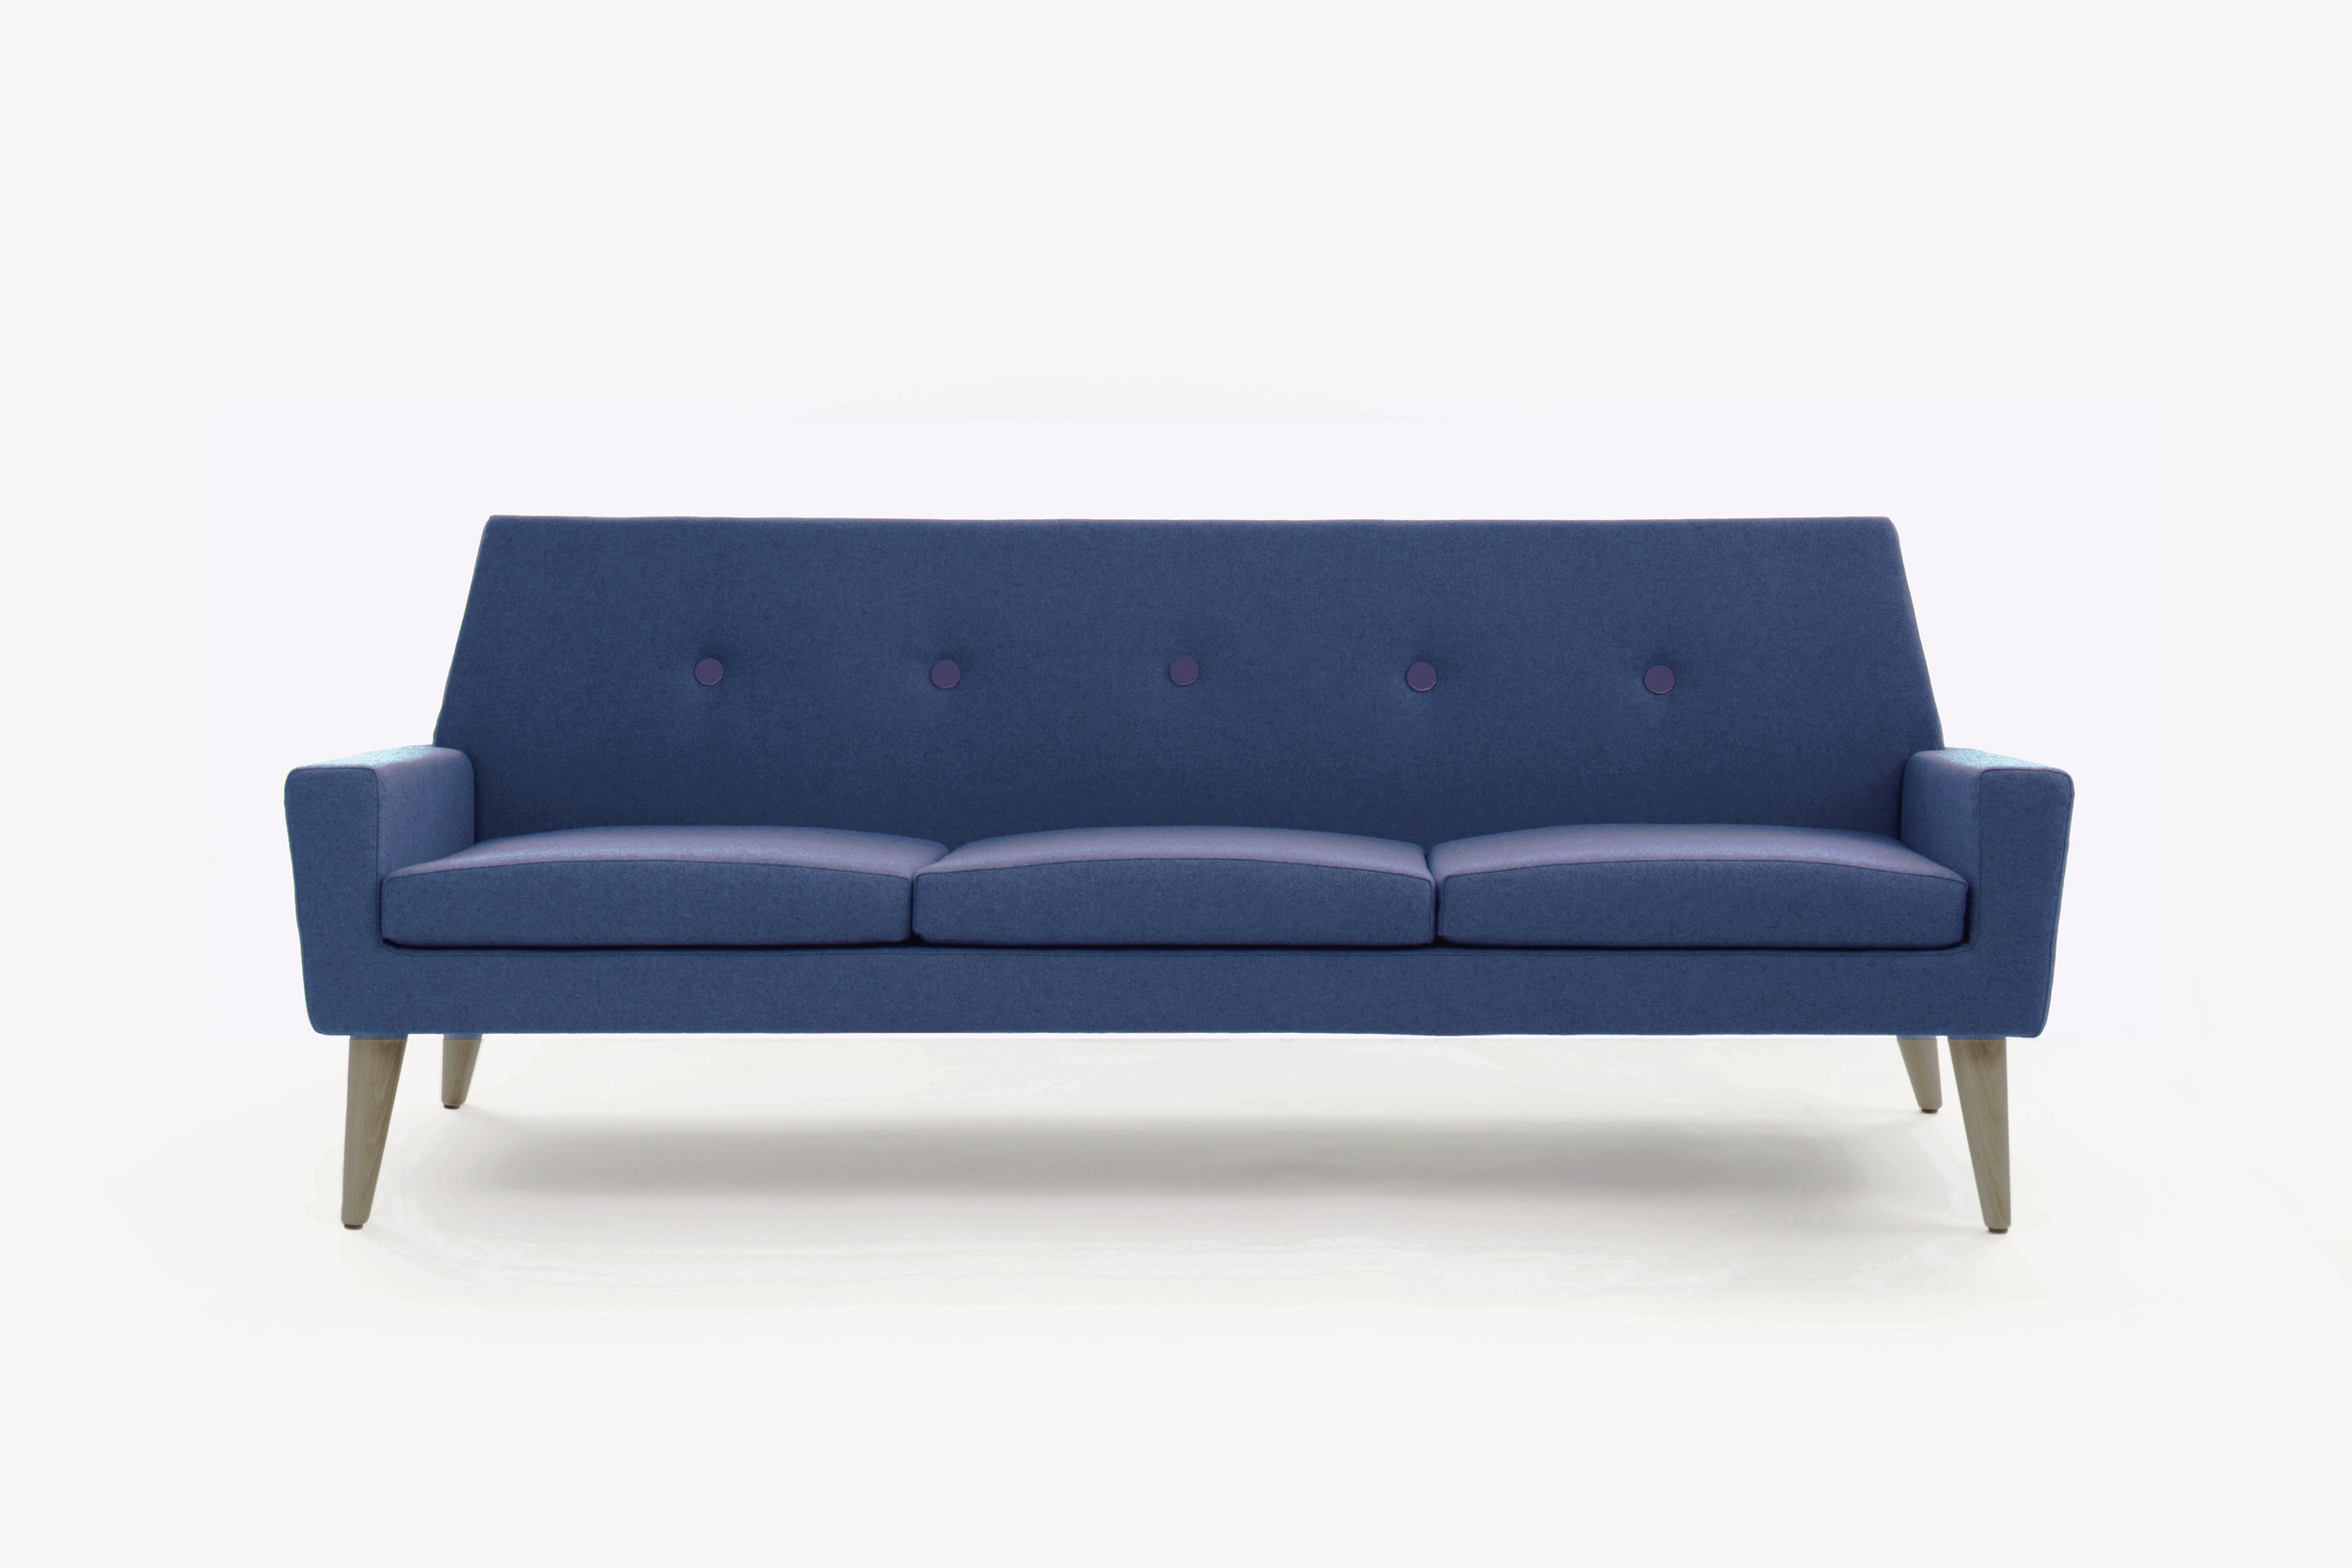 Finsbury Sofa 3 seater blue.jpg